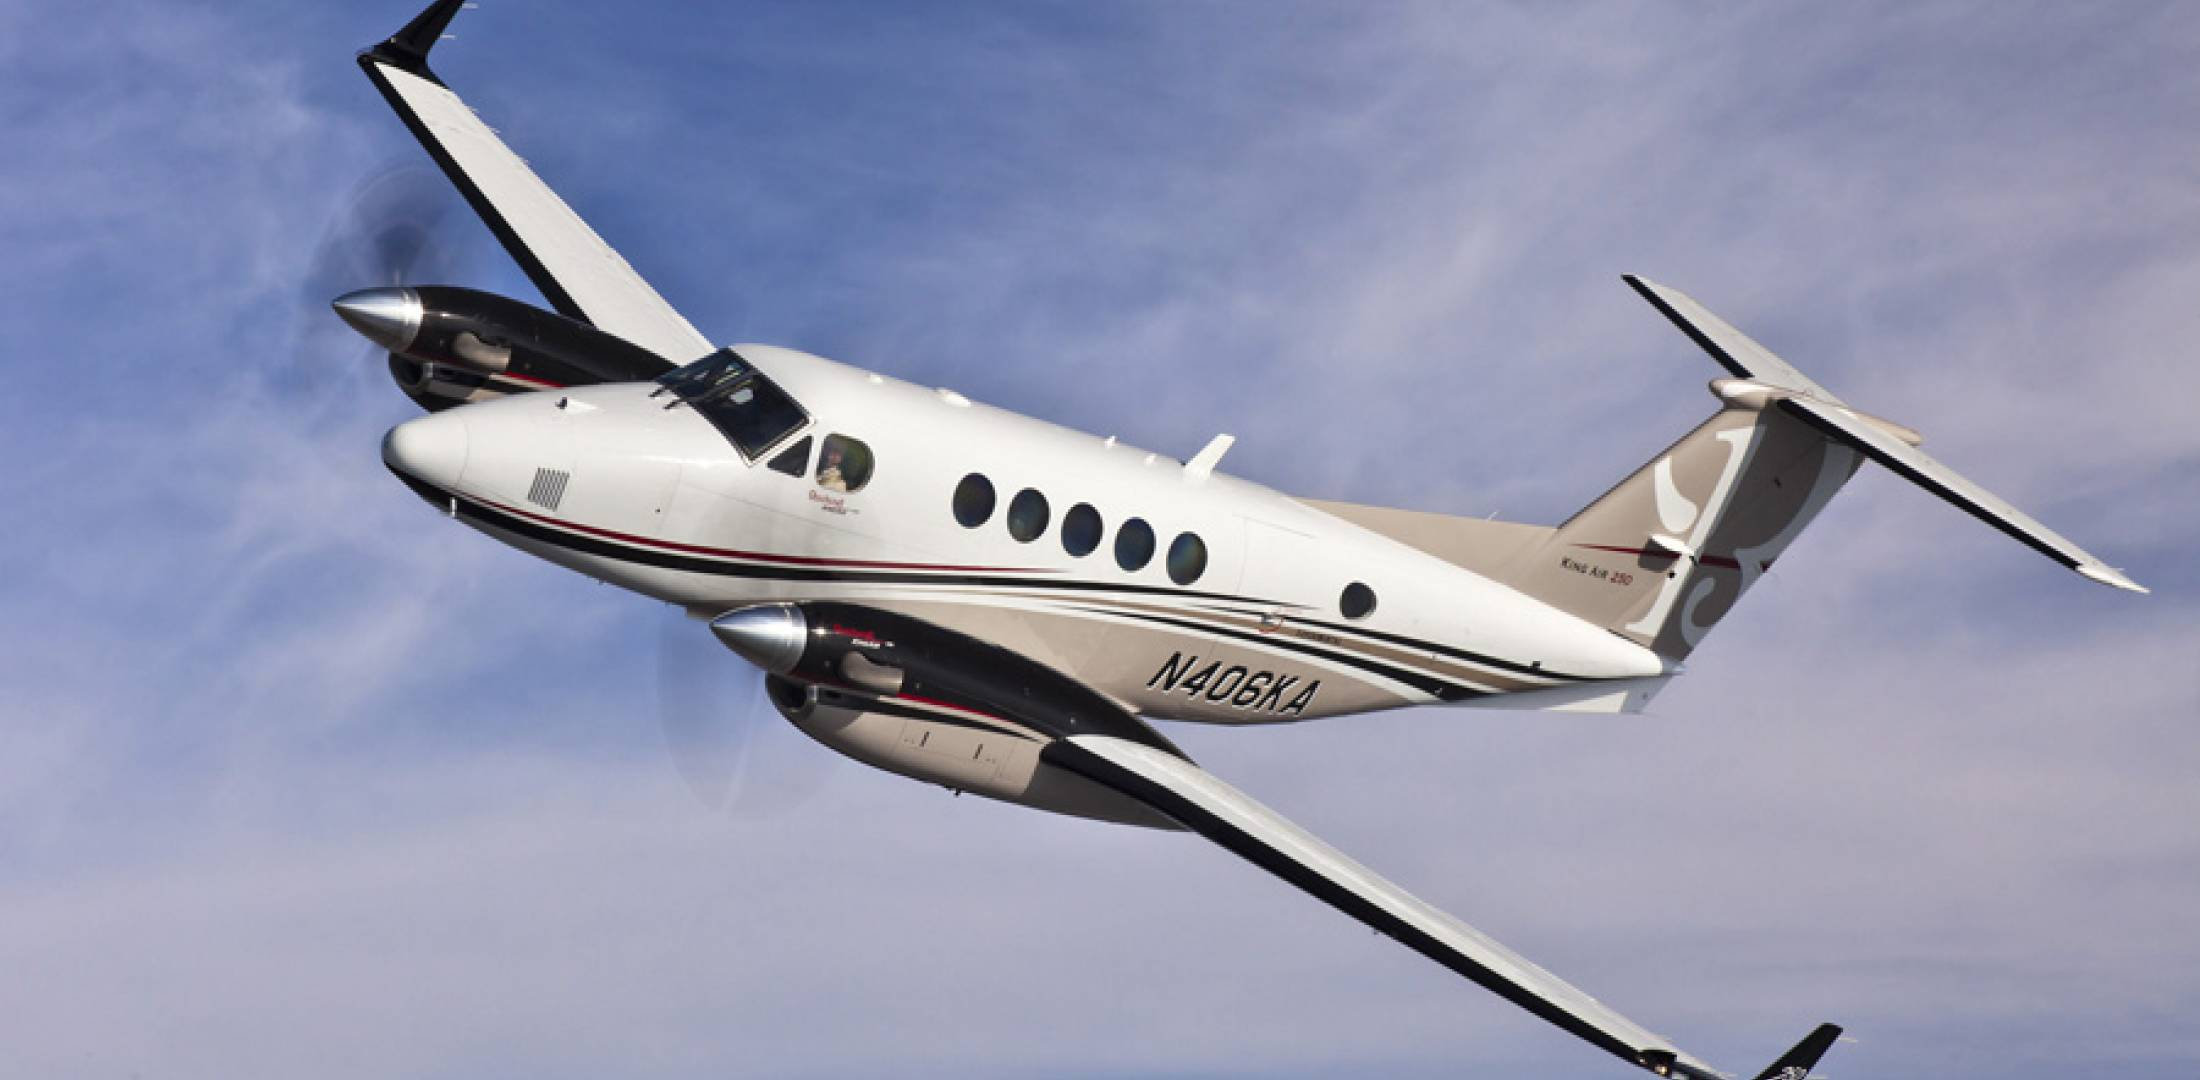 Hawker Beechcraft today reported revenues of $518.8 million for the three months